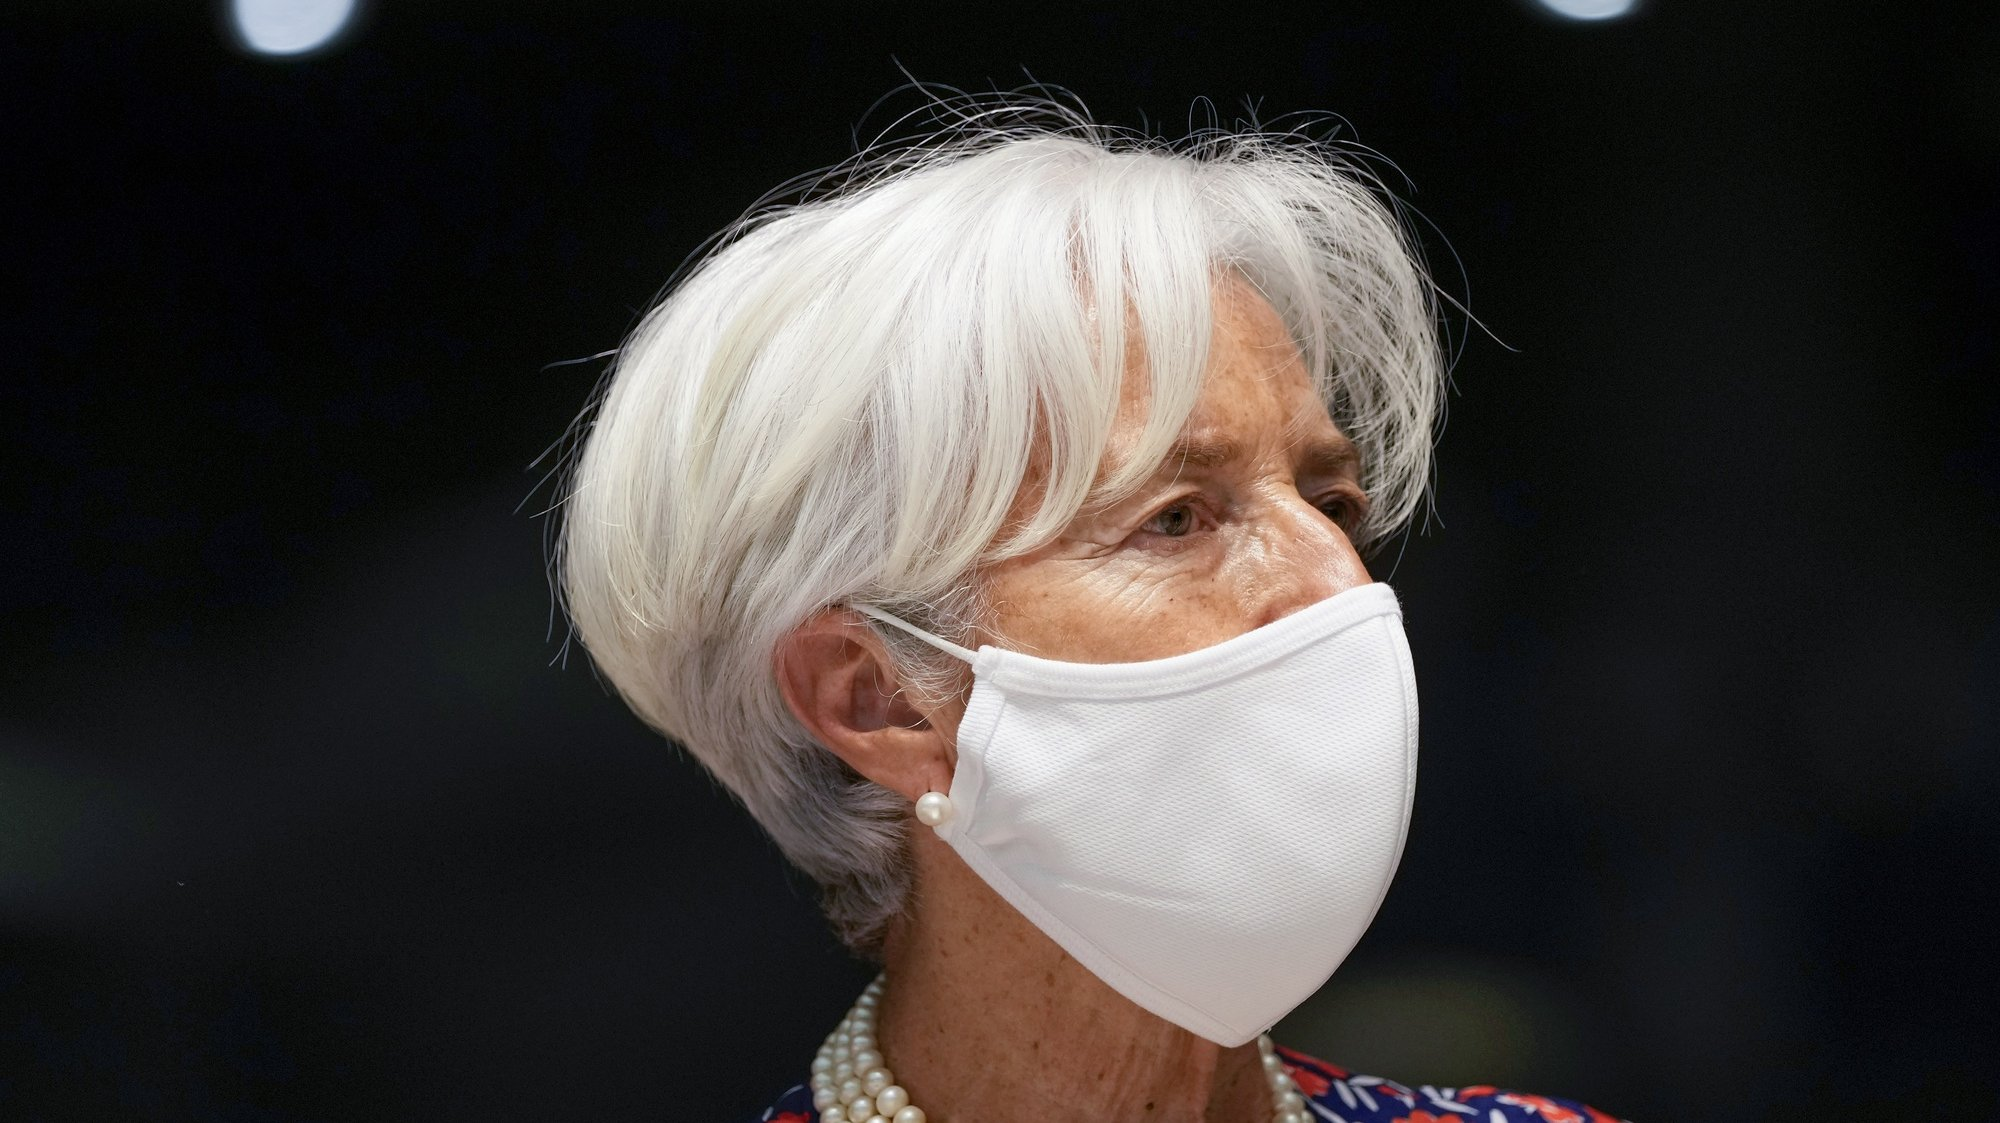 epa09279751 European Central Bank President Christine Lagarde arrives to a meeting of Eurogroup Finance Ministers at the European Council building in Luxembourg, 17 June 2021.  EPA/FRANCISCO SECO / POOL